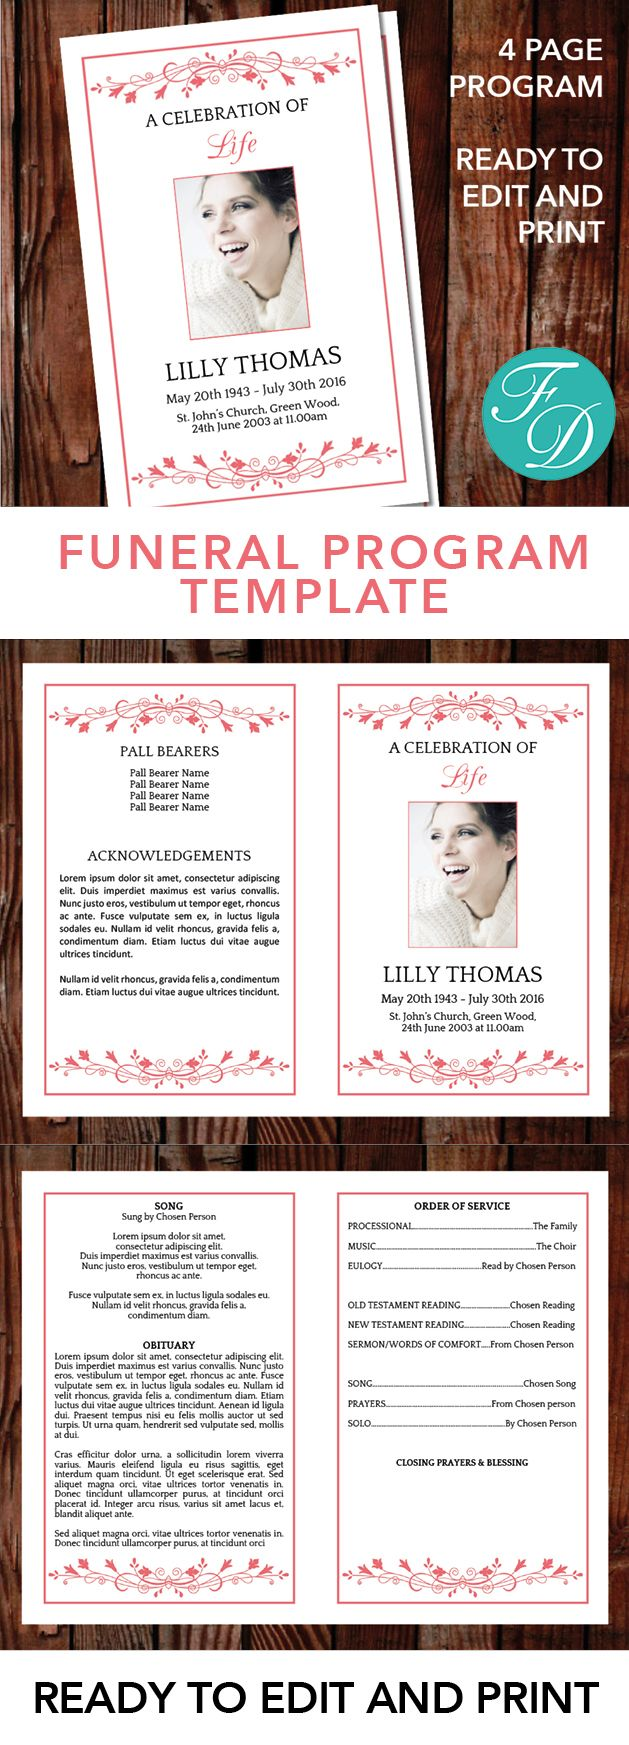 Printable Funeral program ready to edit & print Simply purchase your funeral templates, download, edit with Microsoft Word and print. #obituarytemplate #memorialprogram #funeralprograms #funeraltemplate #printableprogram #celebrationoflife